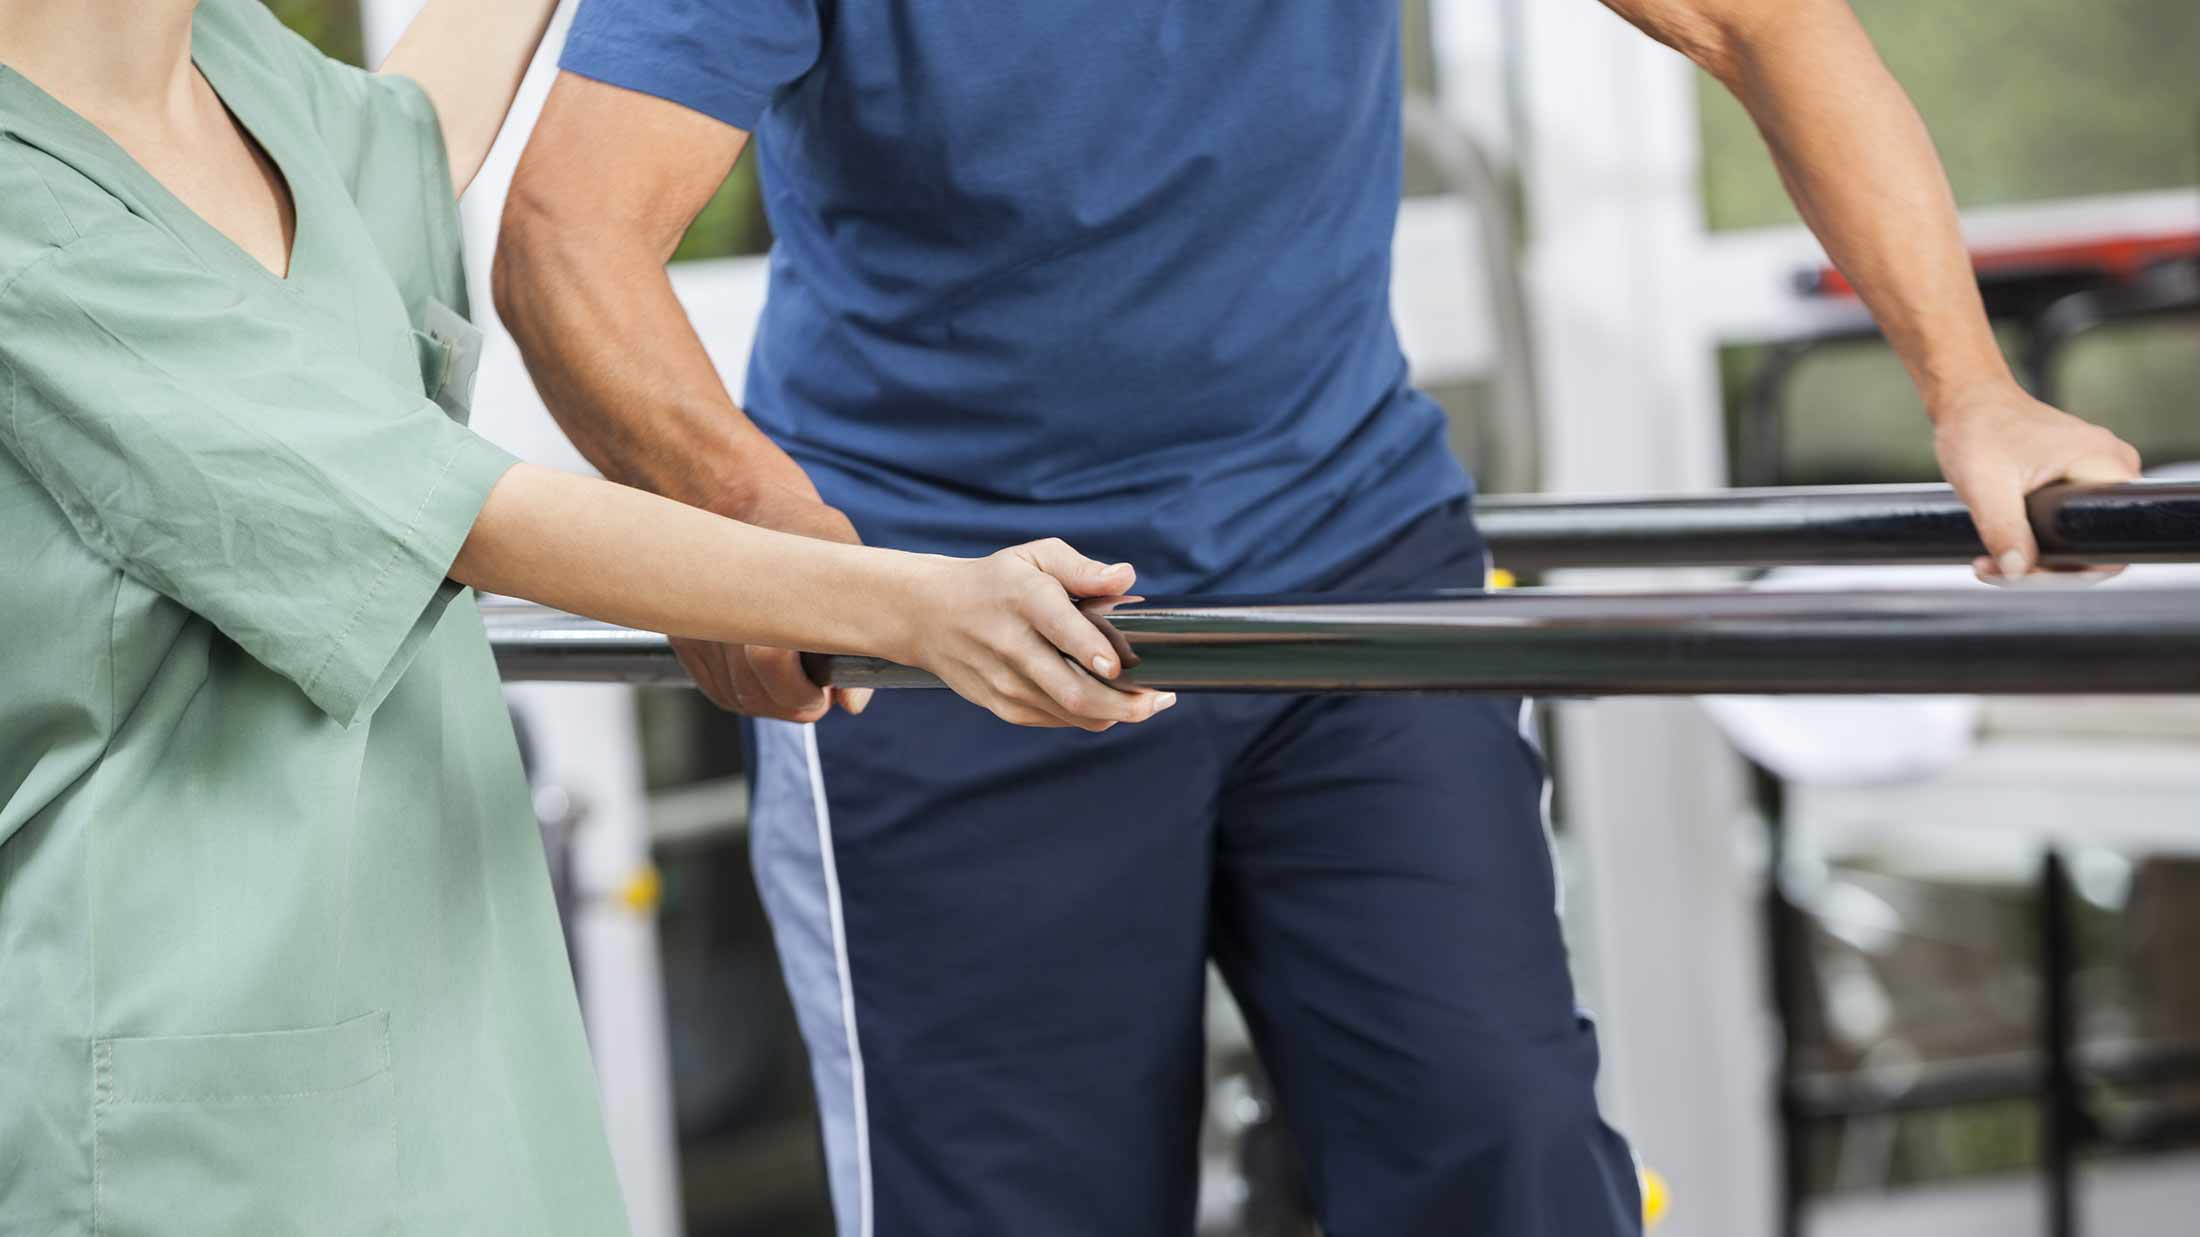 How can you benefit from physical therapy?